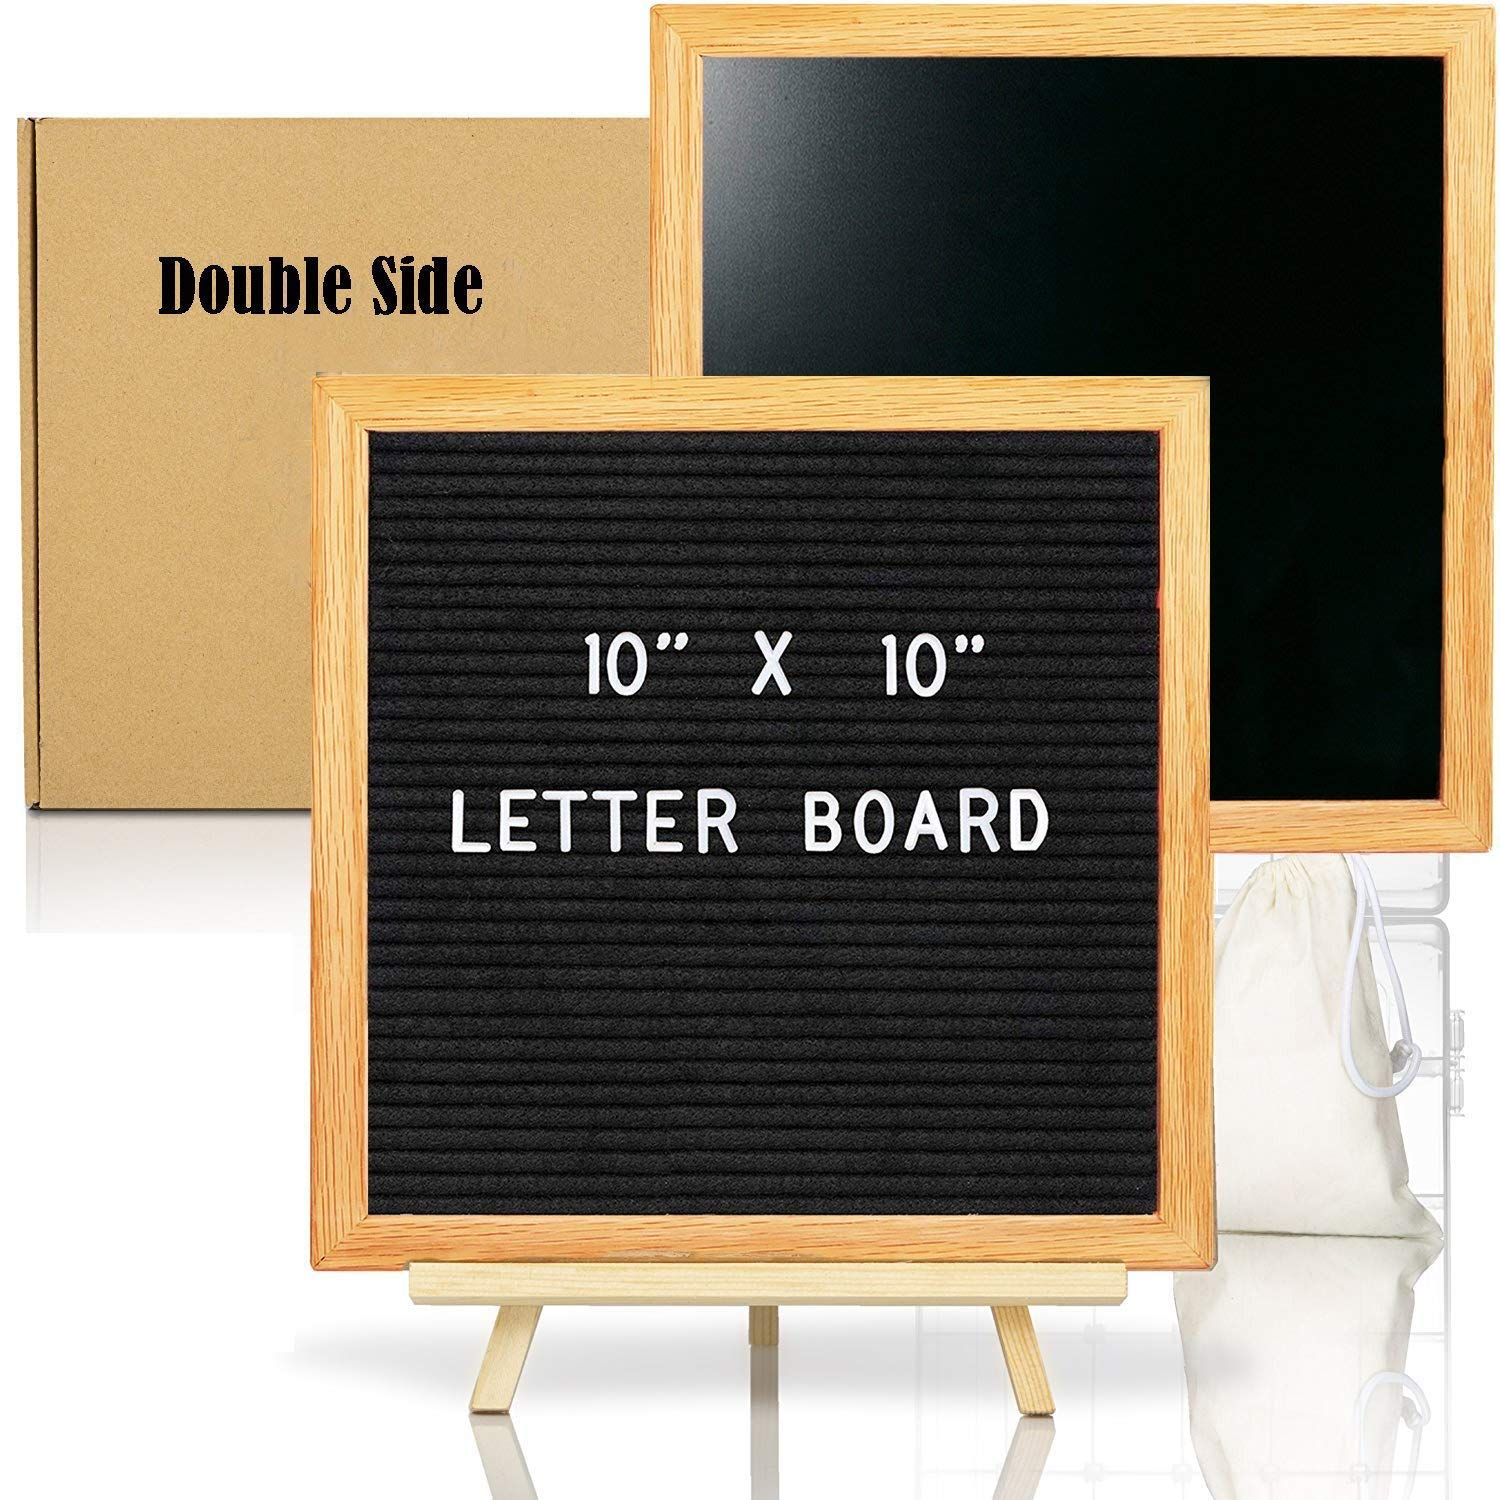 Double Sided Felt Letter Board with Chalkboard -10x10 Black Changeable Message Sign with Oak Frame Stand, 378 Letter Number Emojis, Halloween Photo Prop Board Sign, Xmas Gifts Baby Shower Swibitter